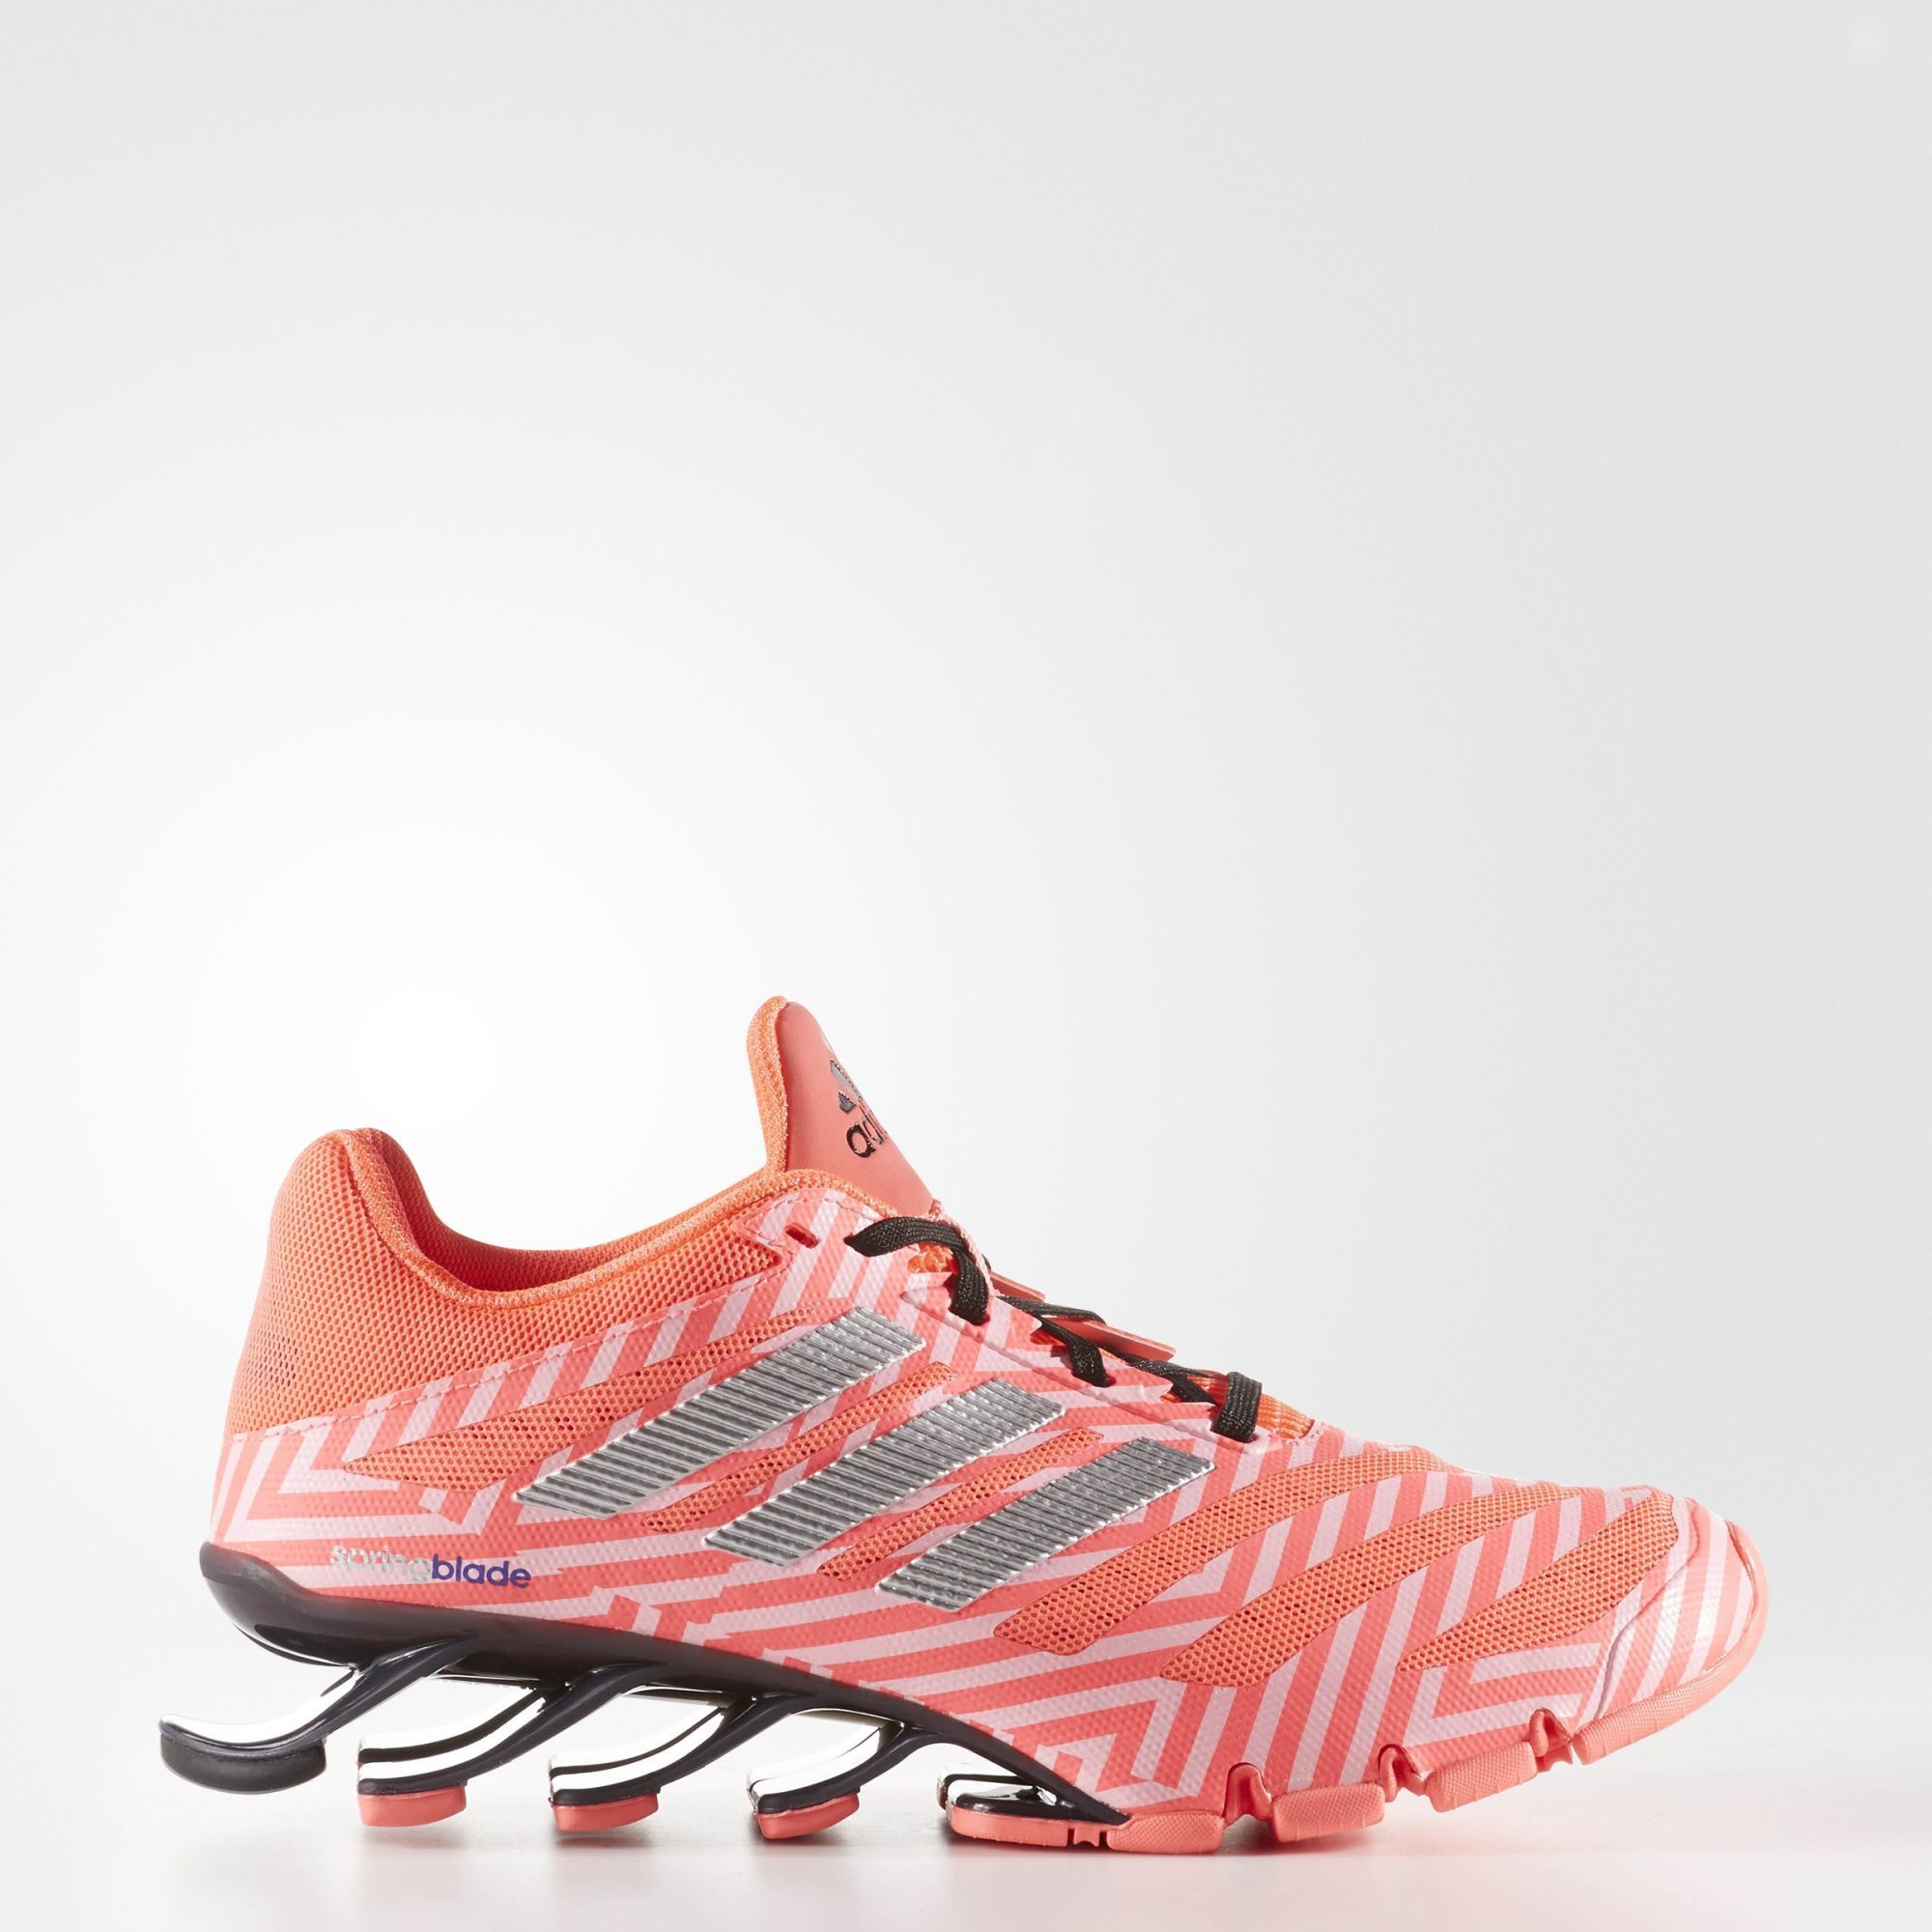 WOMEN'S RUNNING SPRINGBLADE SHOES $ 70